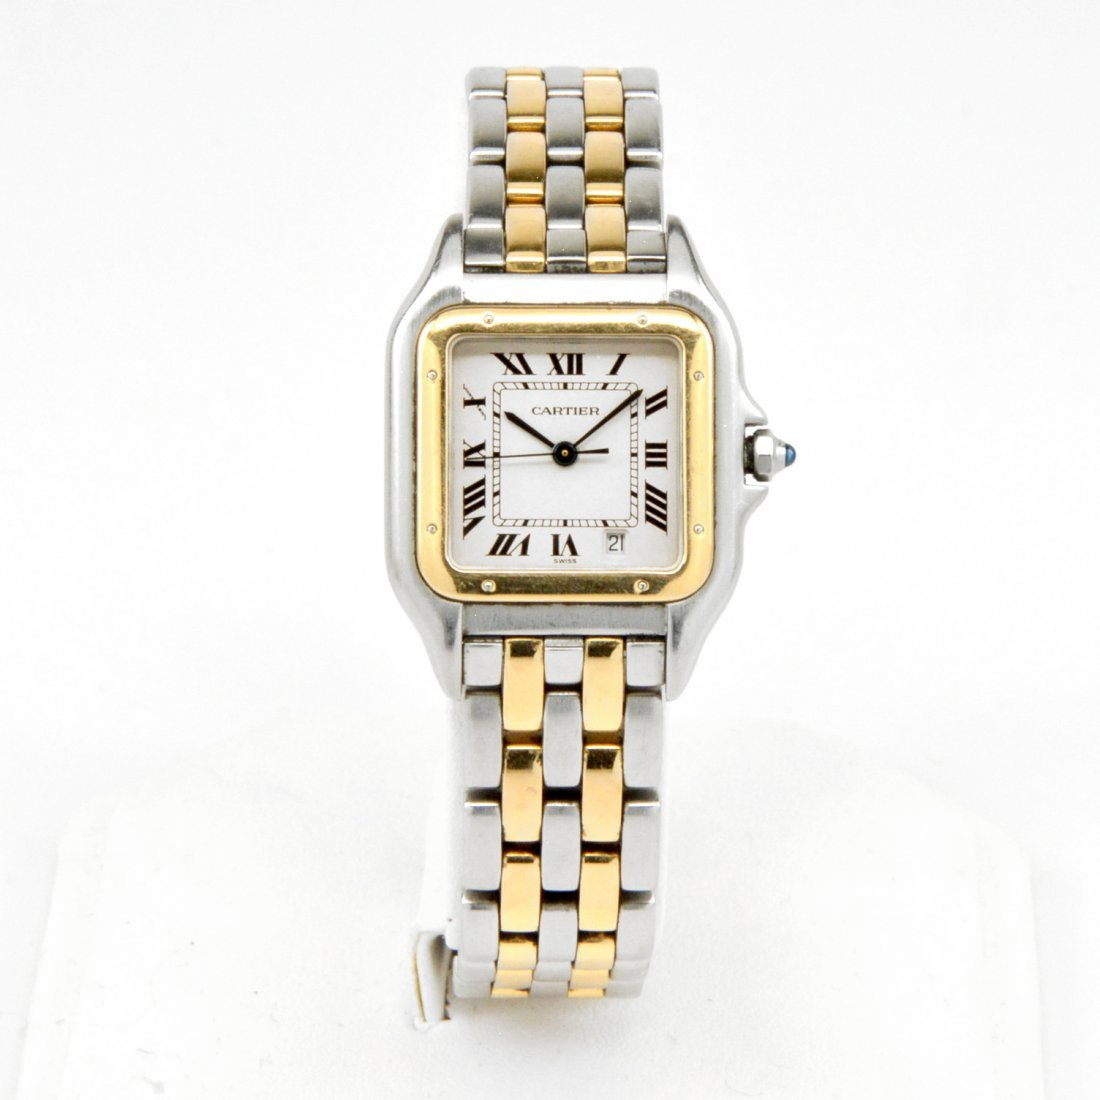 18k Gold & Steel Cartier Panther Watch